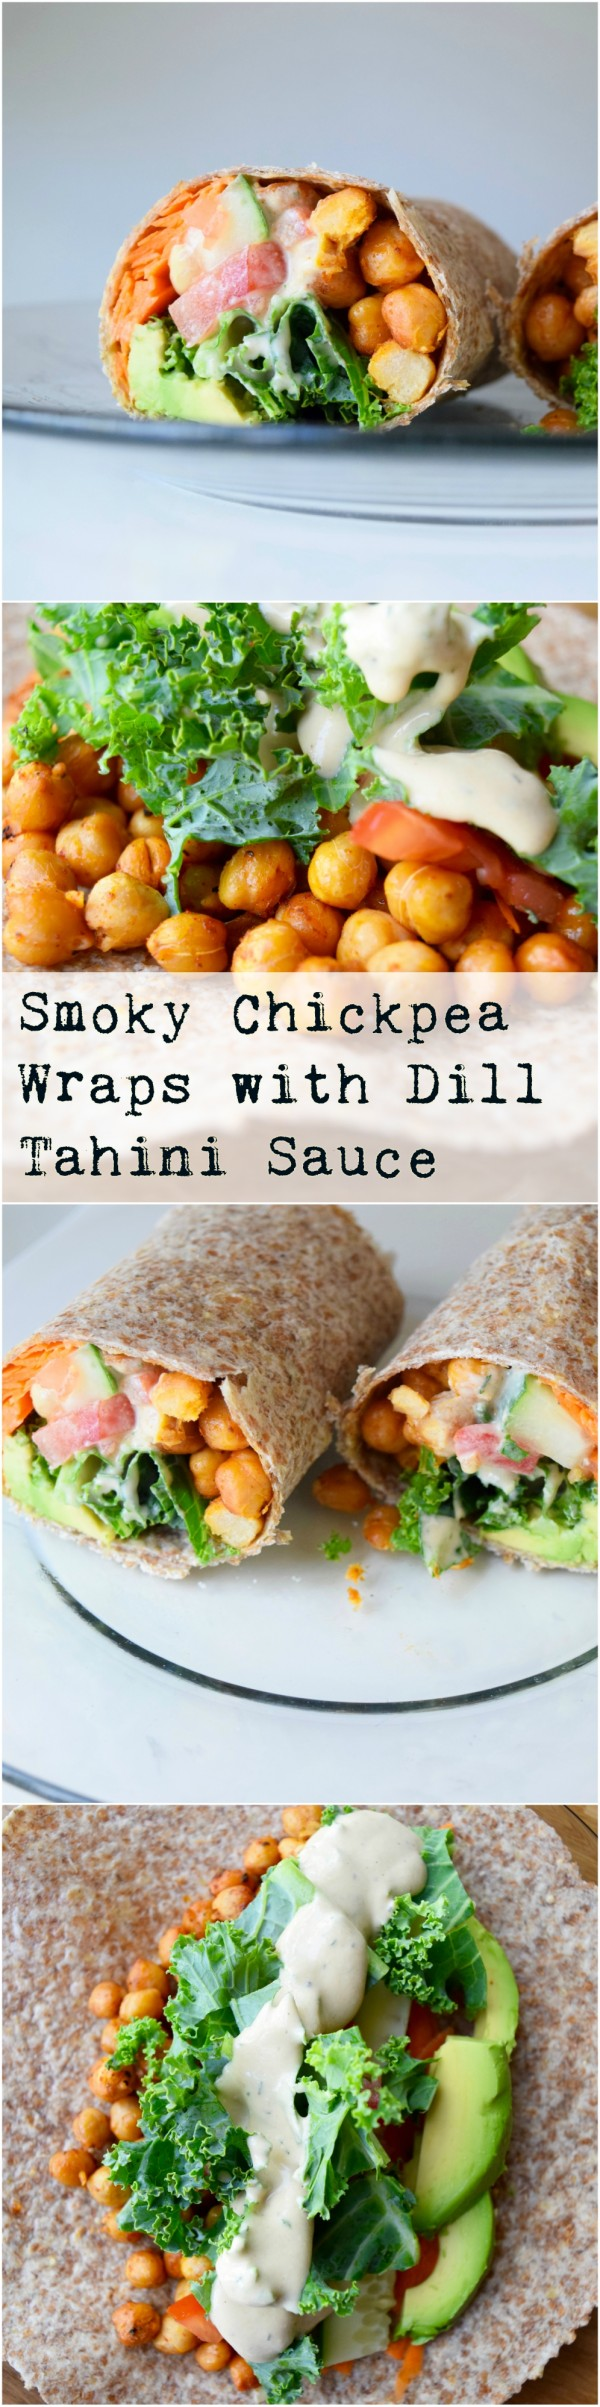 Get the recipe Smoky Chickpea Wraps with Dill Tahini Sauce @recipes_to_go